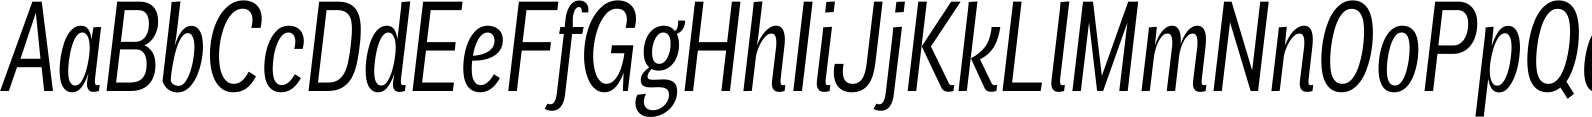 Air Compressed Regular Italic Font